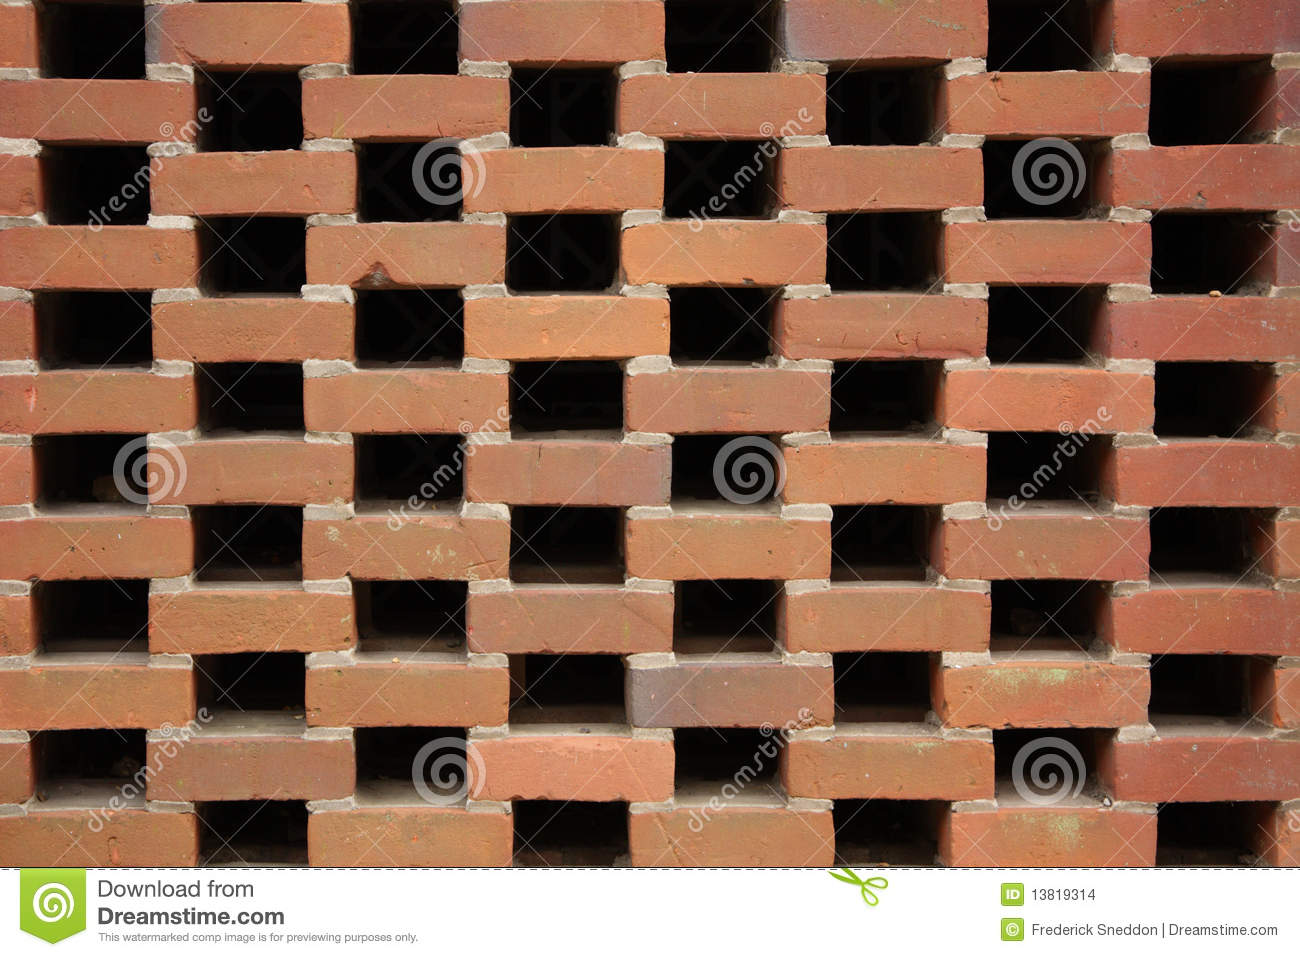 Honeycomb Brick Work : Brick wall built by honeycomb bond method stock photo